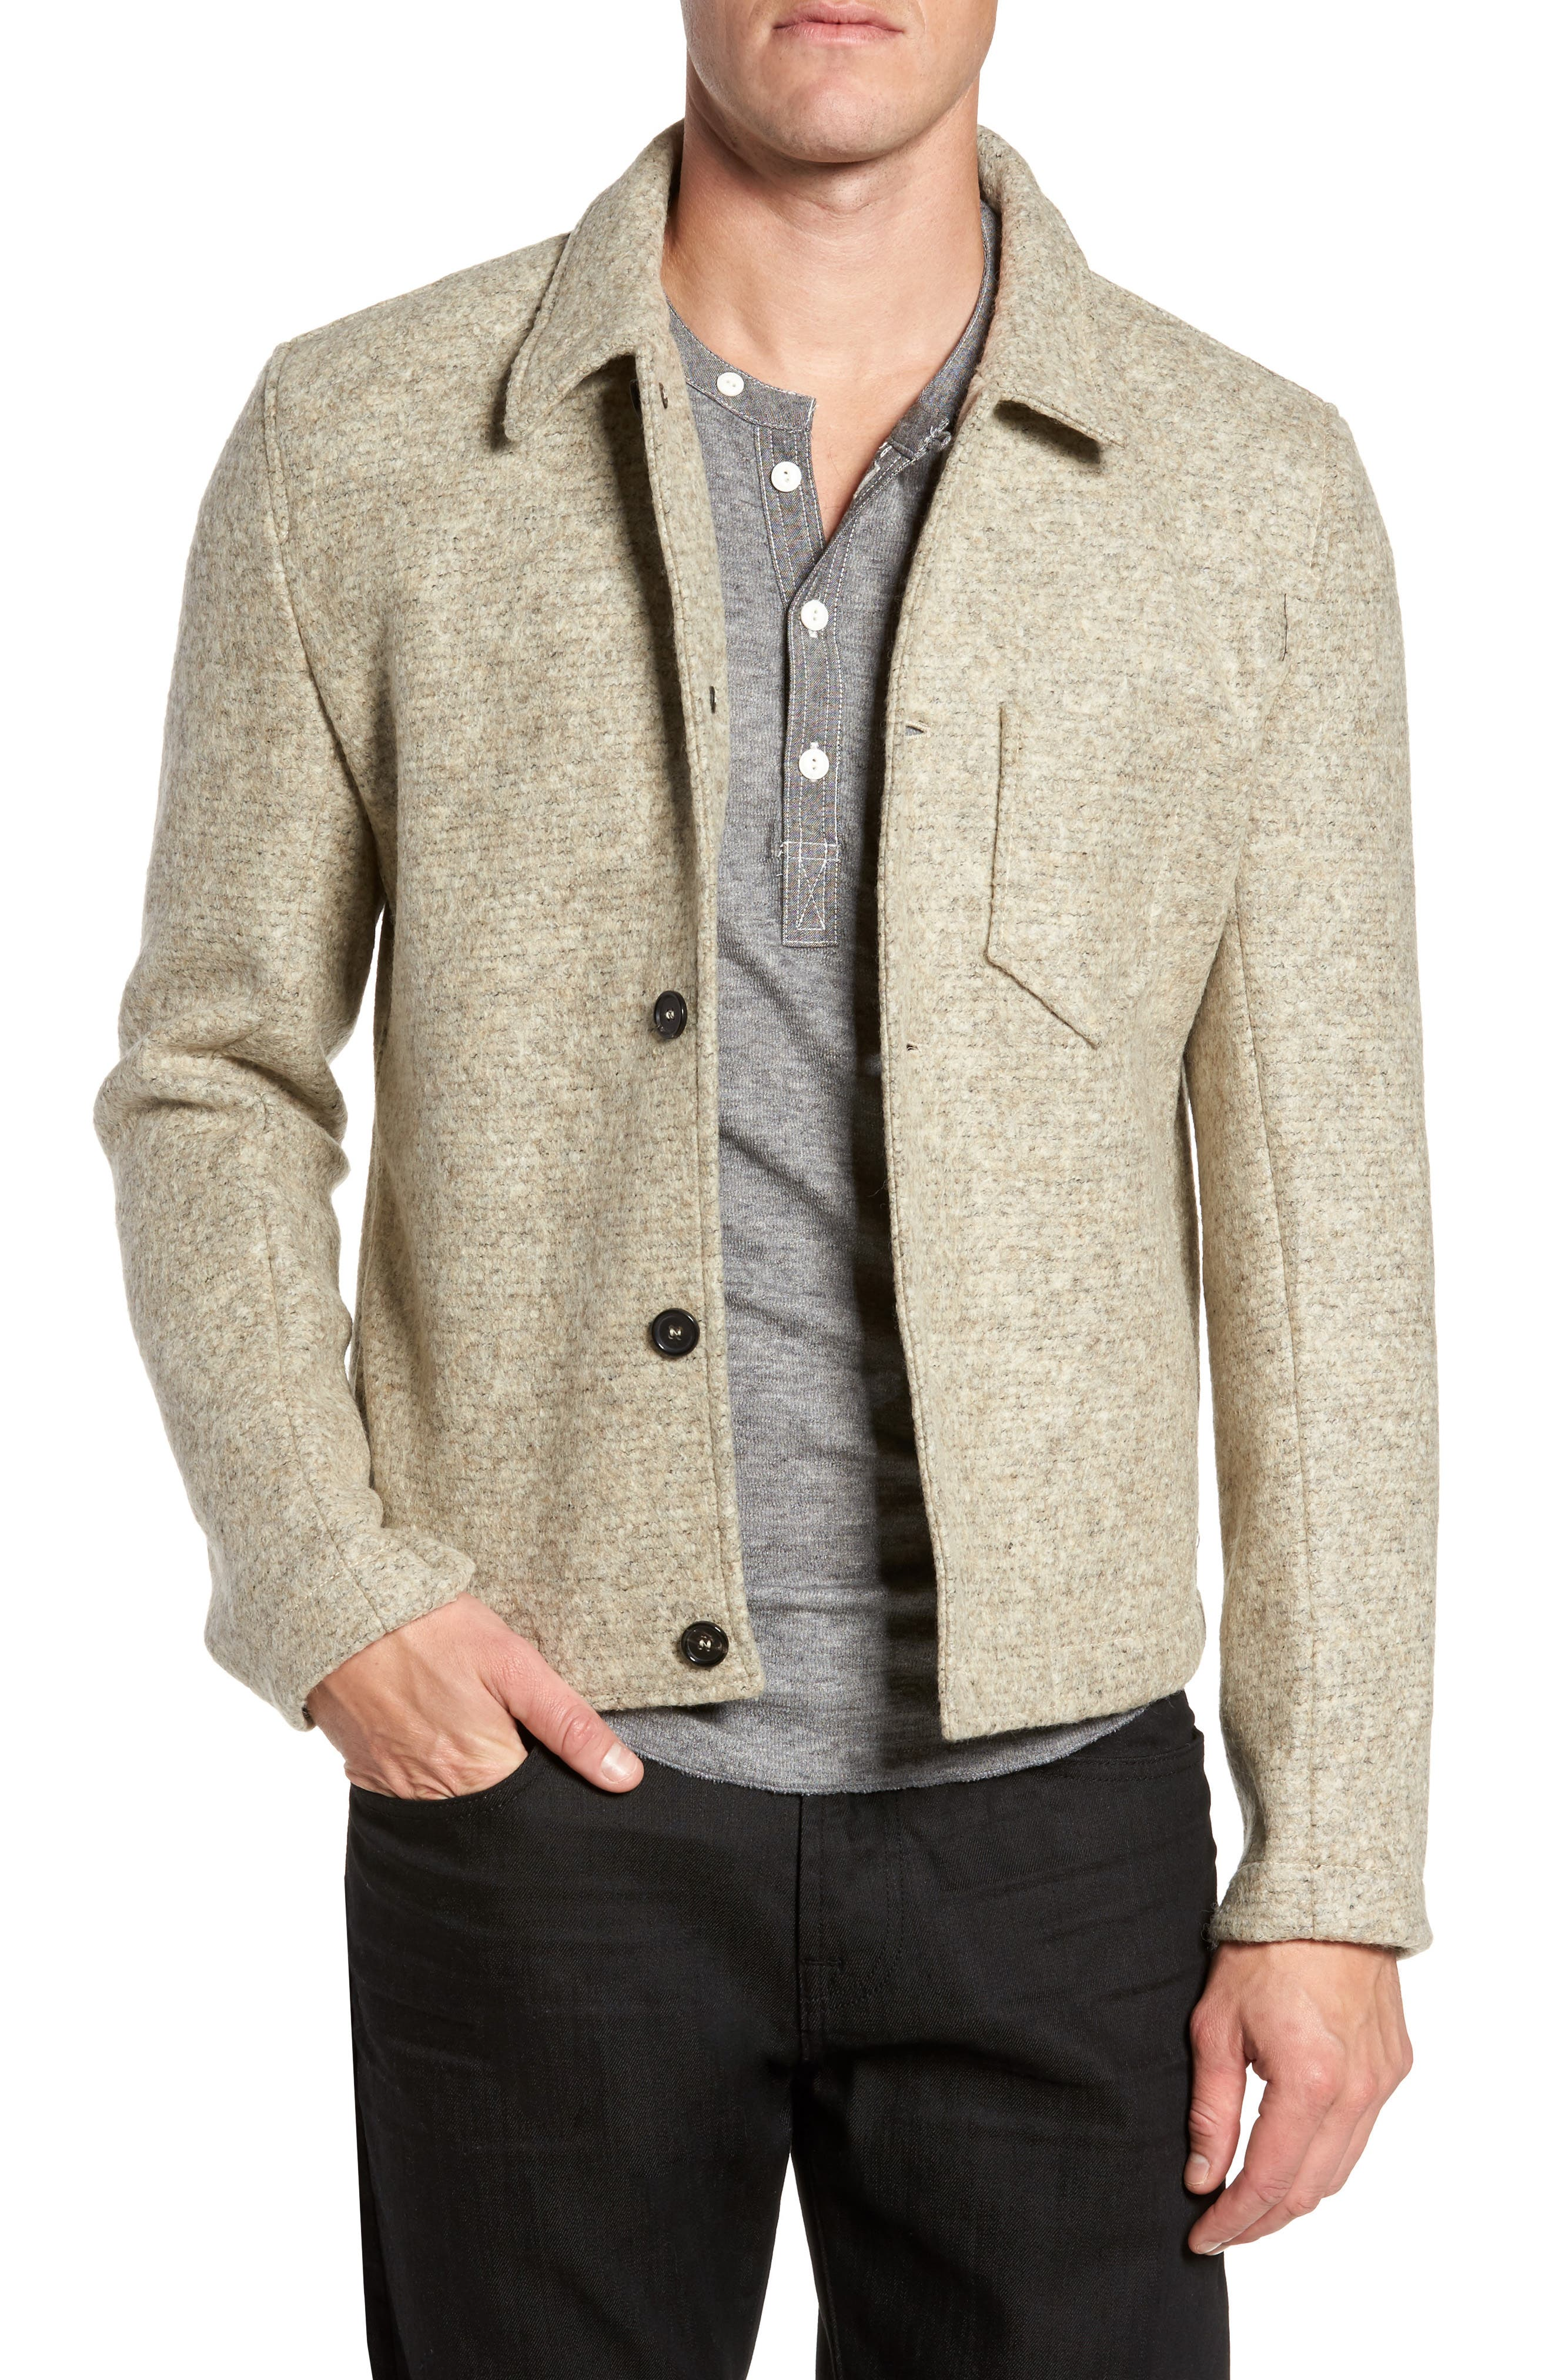 Alternate Image 1 Selected - Billy Reid Gunner Wool Blend Jacket